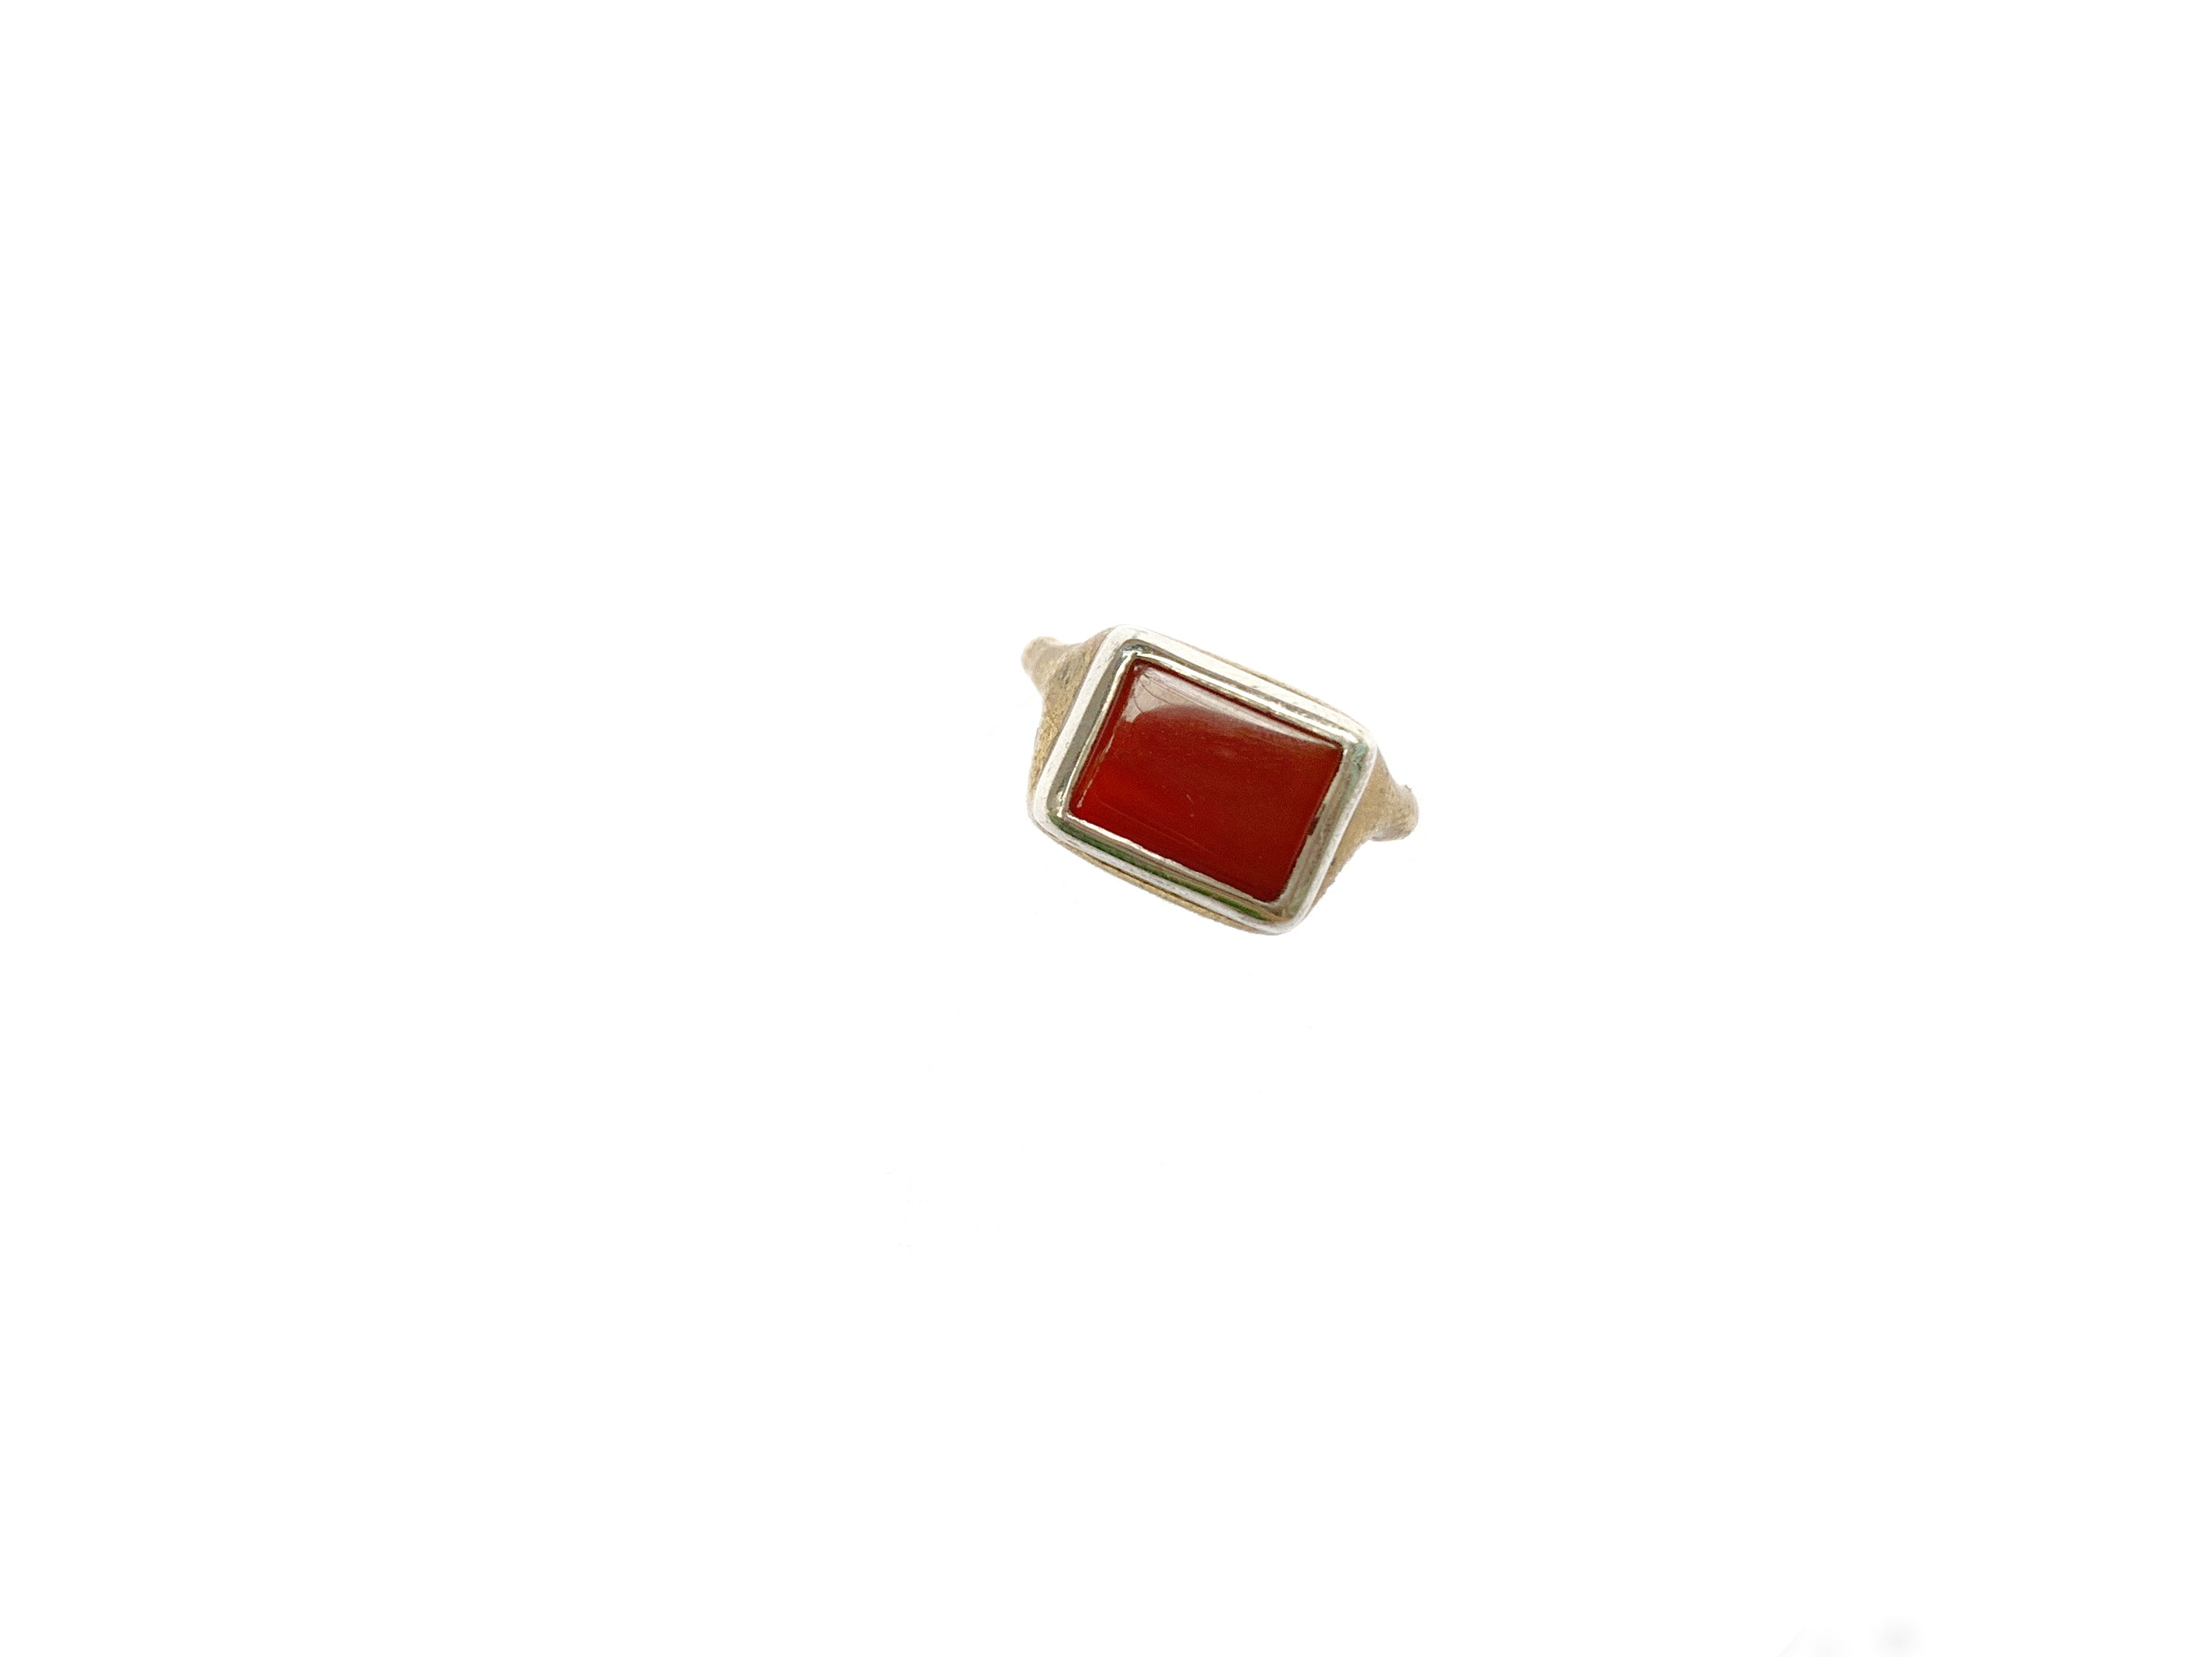 Carnelian brass and silver ring, 3.5